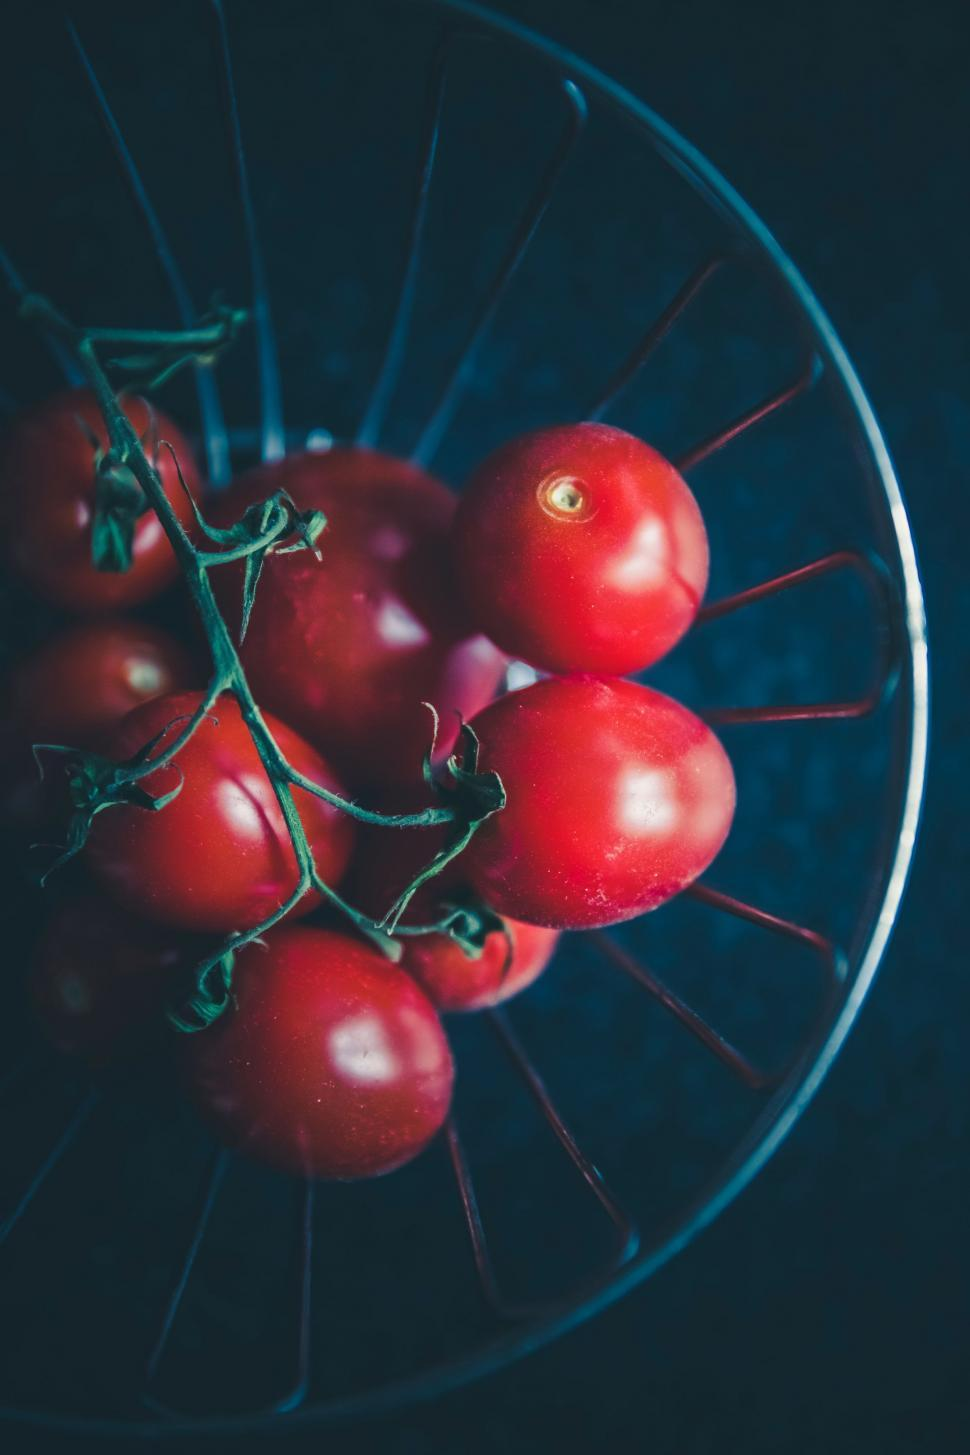 Download Free Stock Photo of cherry fruit berry sweet food ripe juicy fresh diet dessert healthy tasty vitamin cherries tomato delicious stem eat shiny summer produce vegetable nutrition closeup freshness health apple group vitamins vegetarian organic natural eating